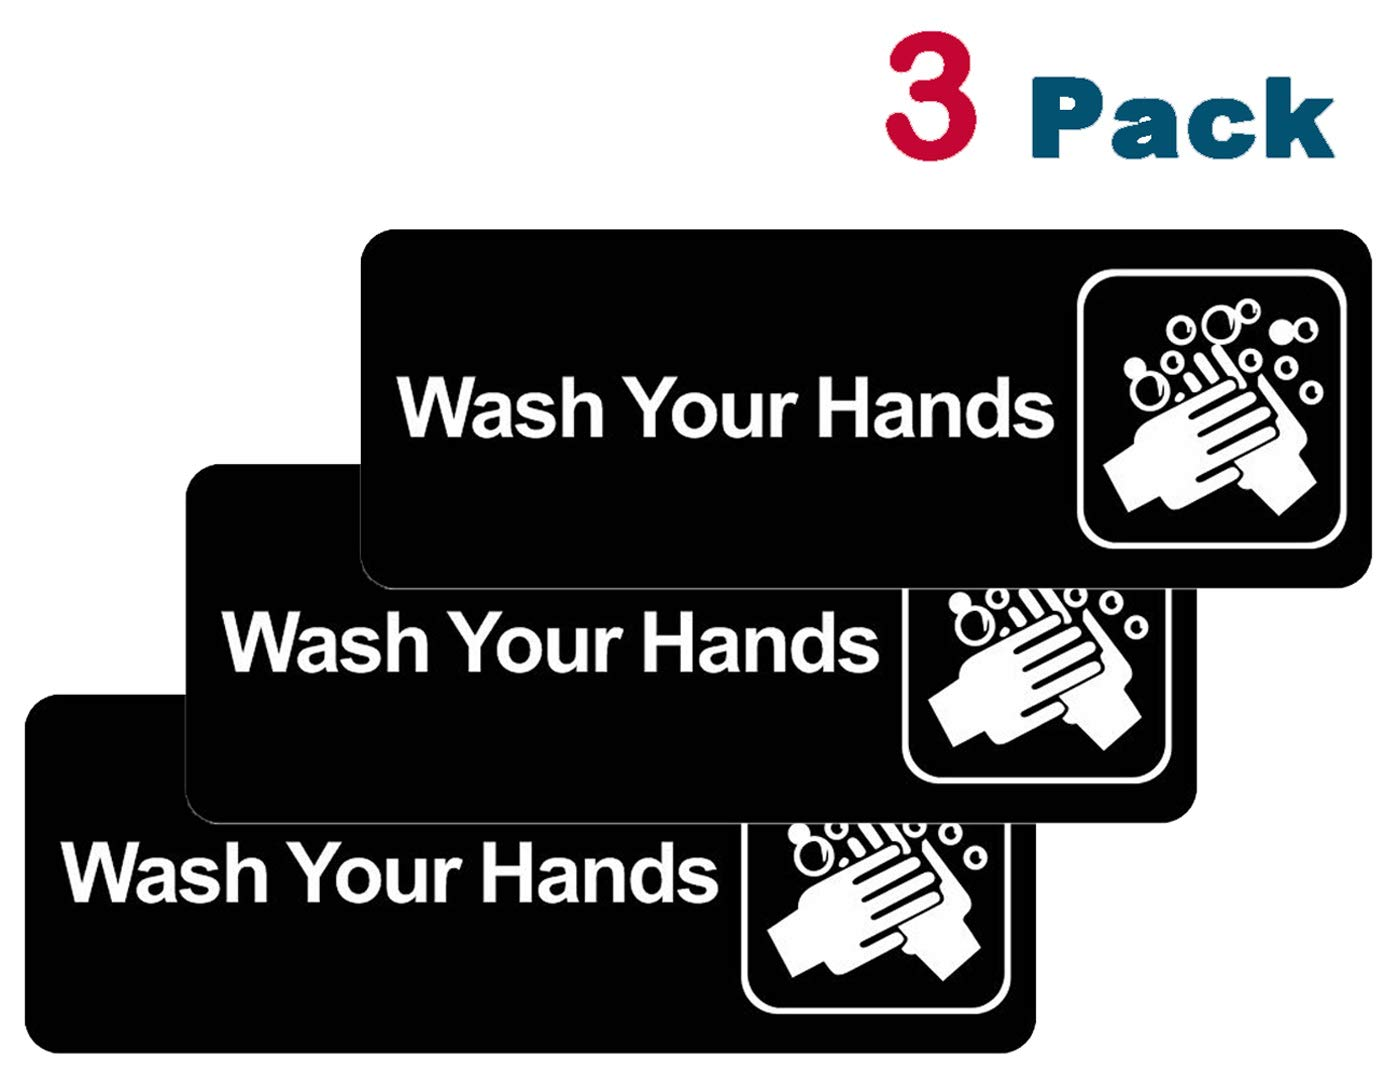 """Wash Your Hands Sign: Easy to Mount Plastic Safety Informative Sign with Symbols Great for Home Office Business (7.7""""x2.7"""",3Pack)"""